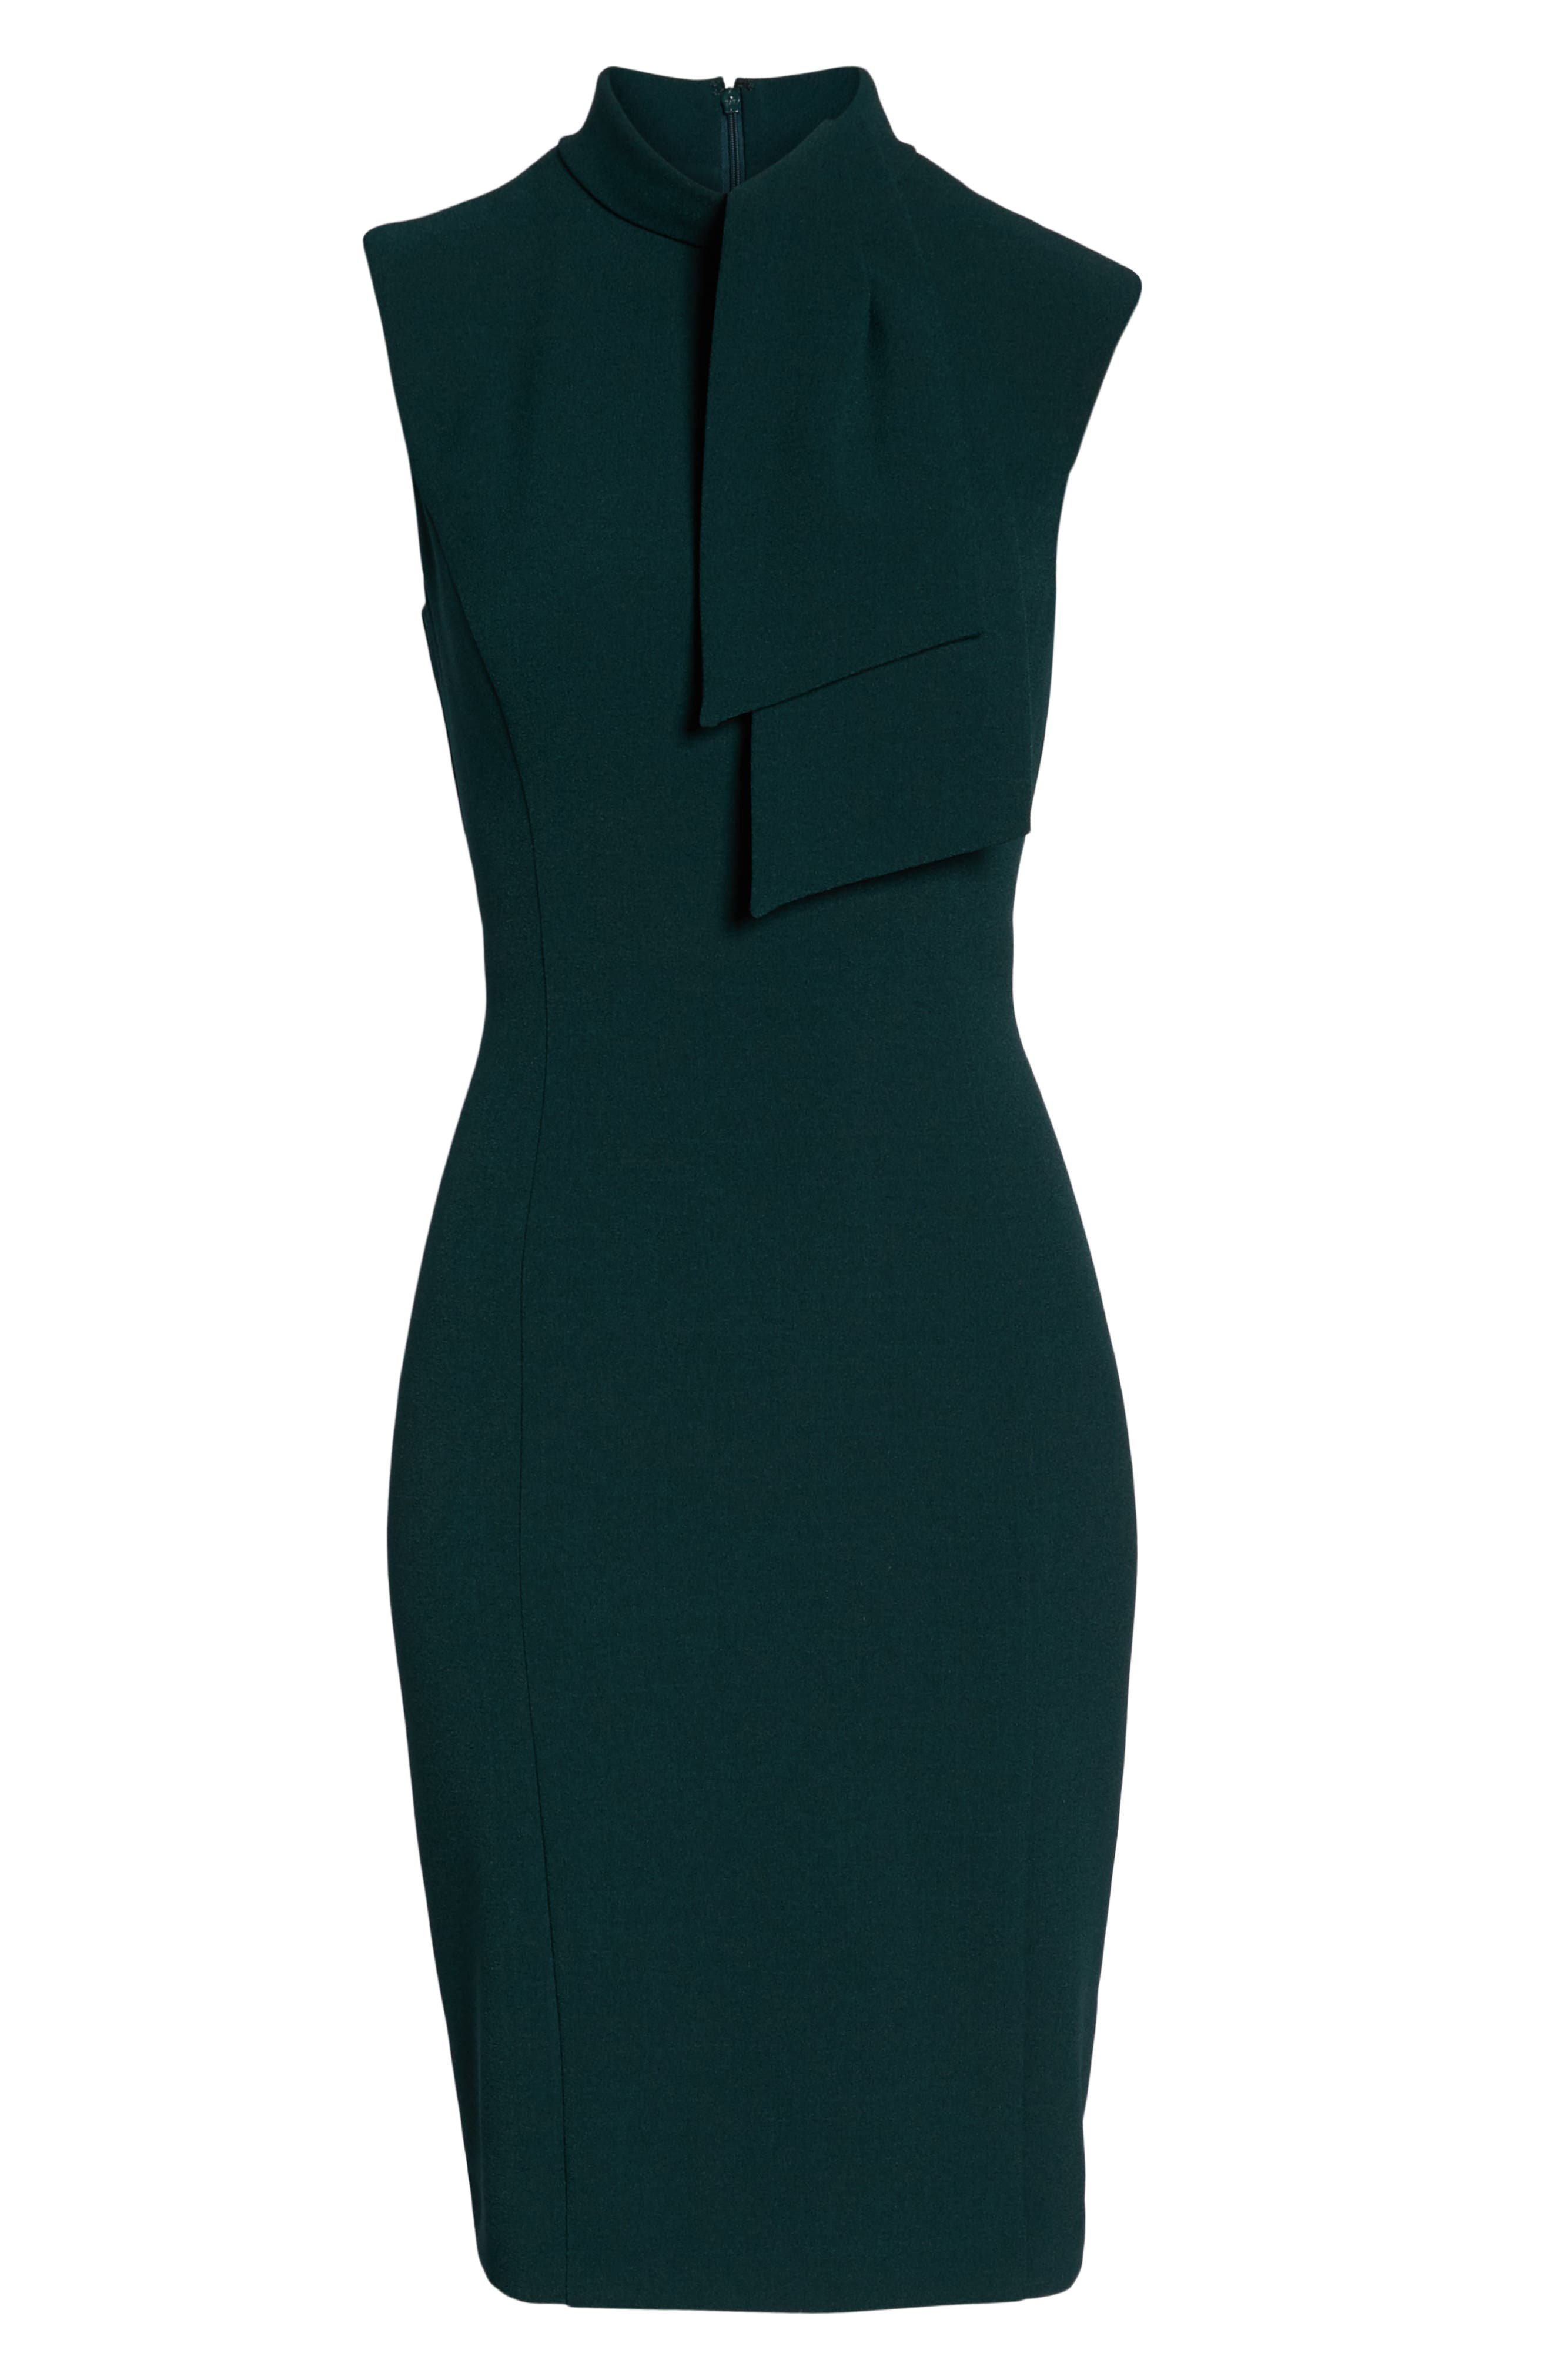 HARPER ROSE,                             Tie Neck Sheath Dress,                             Alternate thumbnail 8, color,                             302